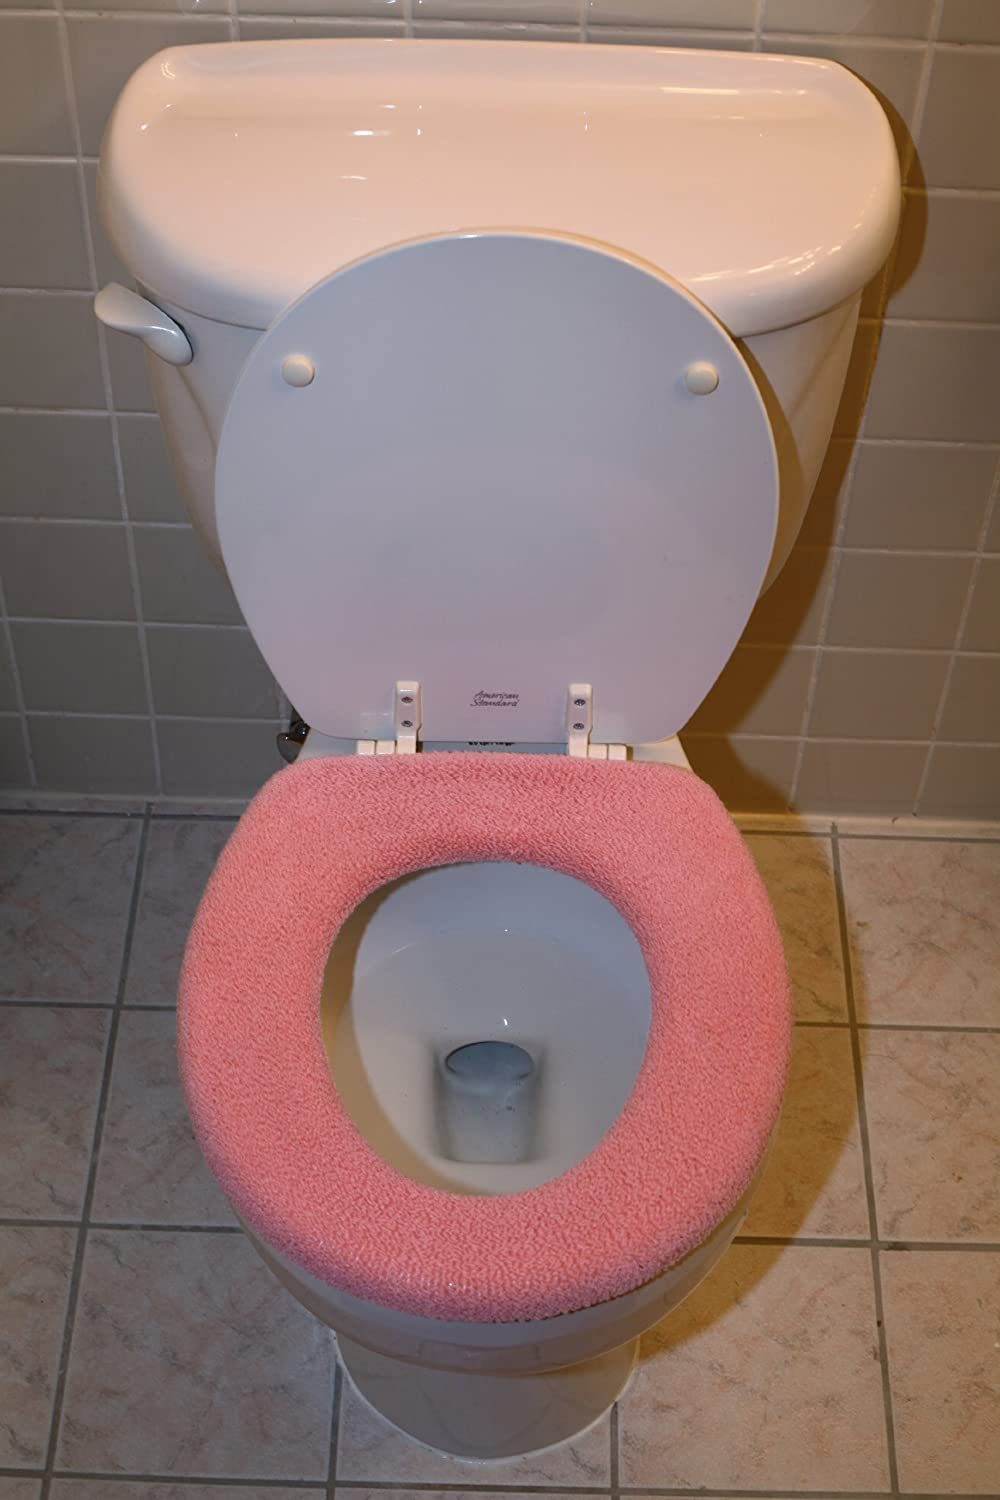 Amazon Warm And Fuzzy Toilet Seat Covers Pink Home Kitchen